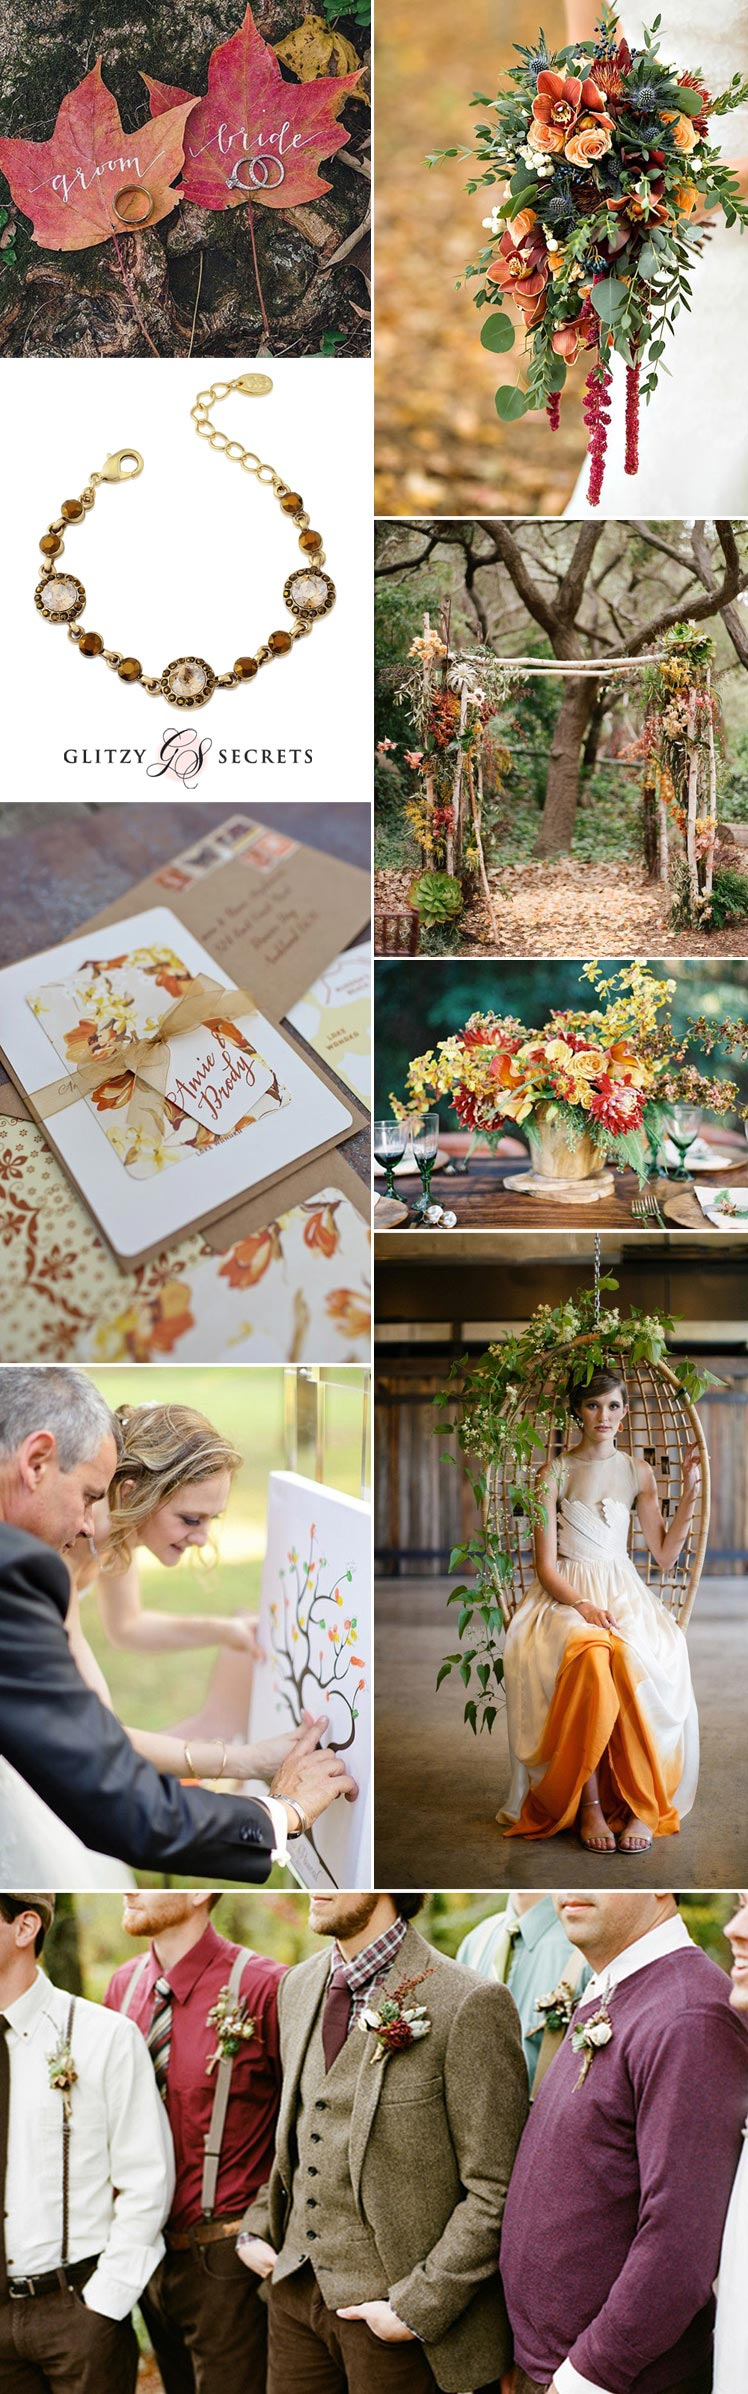 fabulous ideas for an autumn wedding